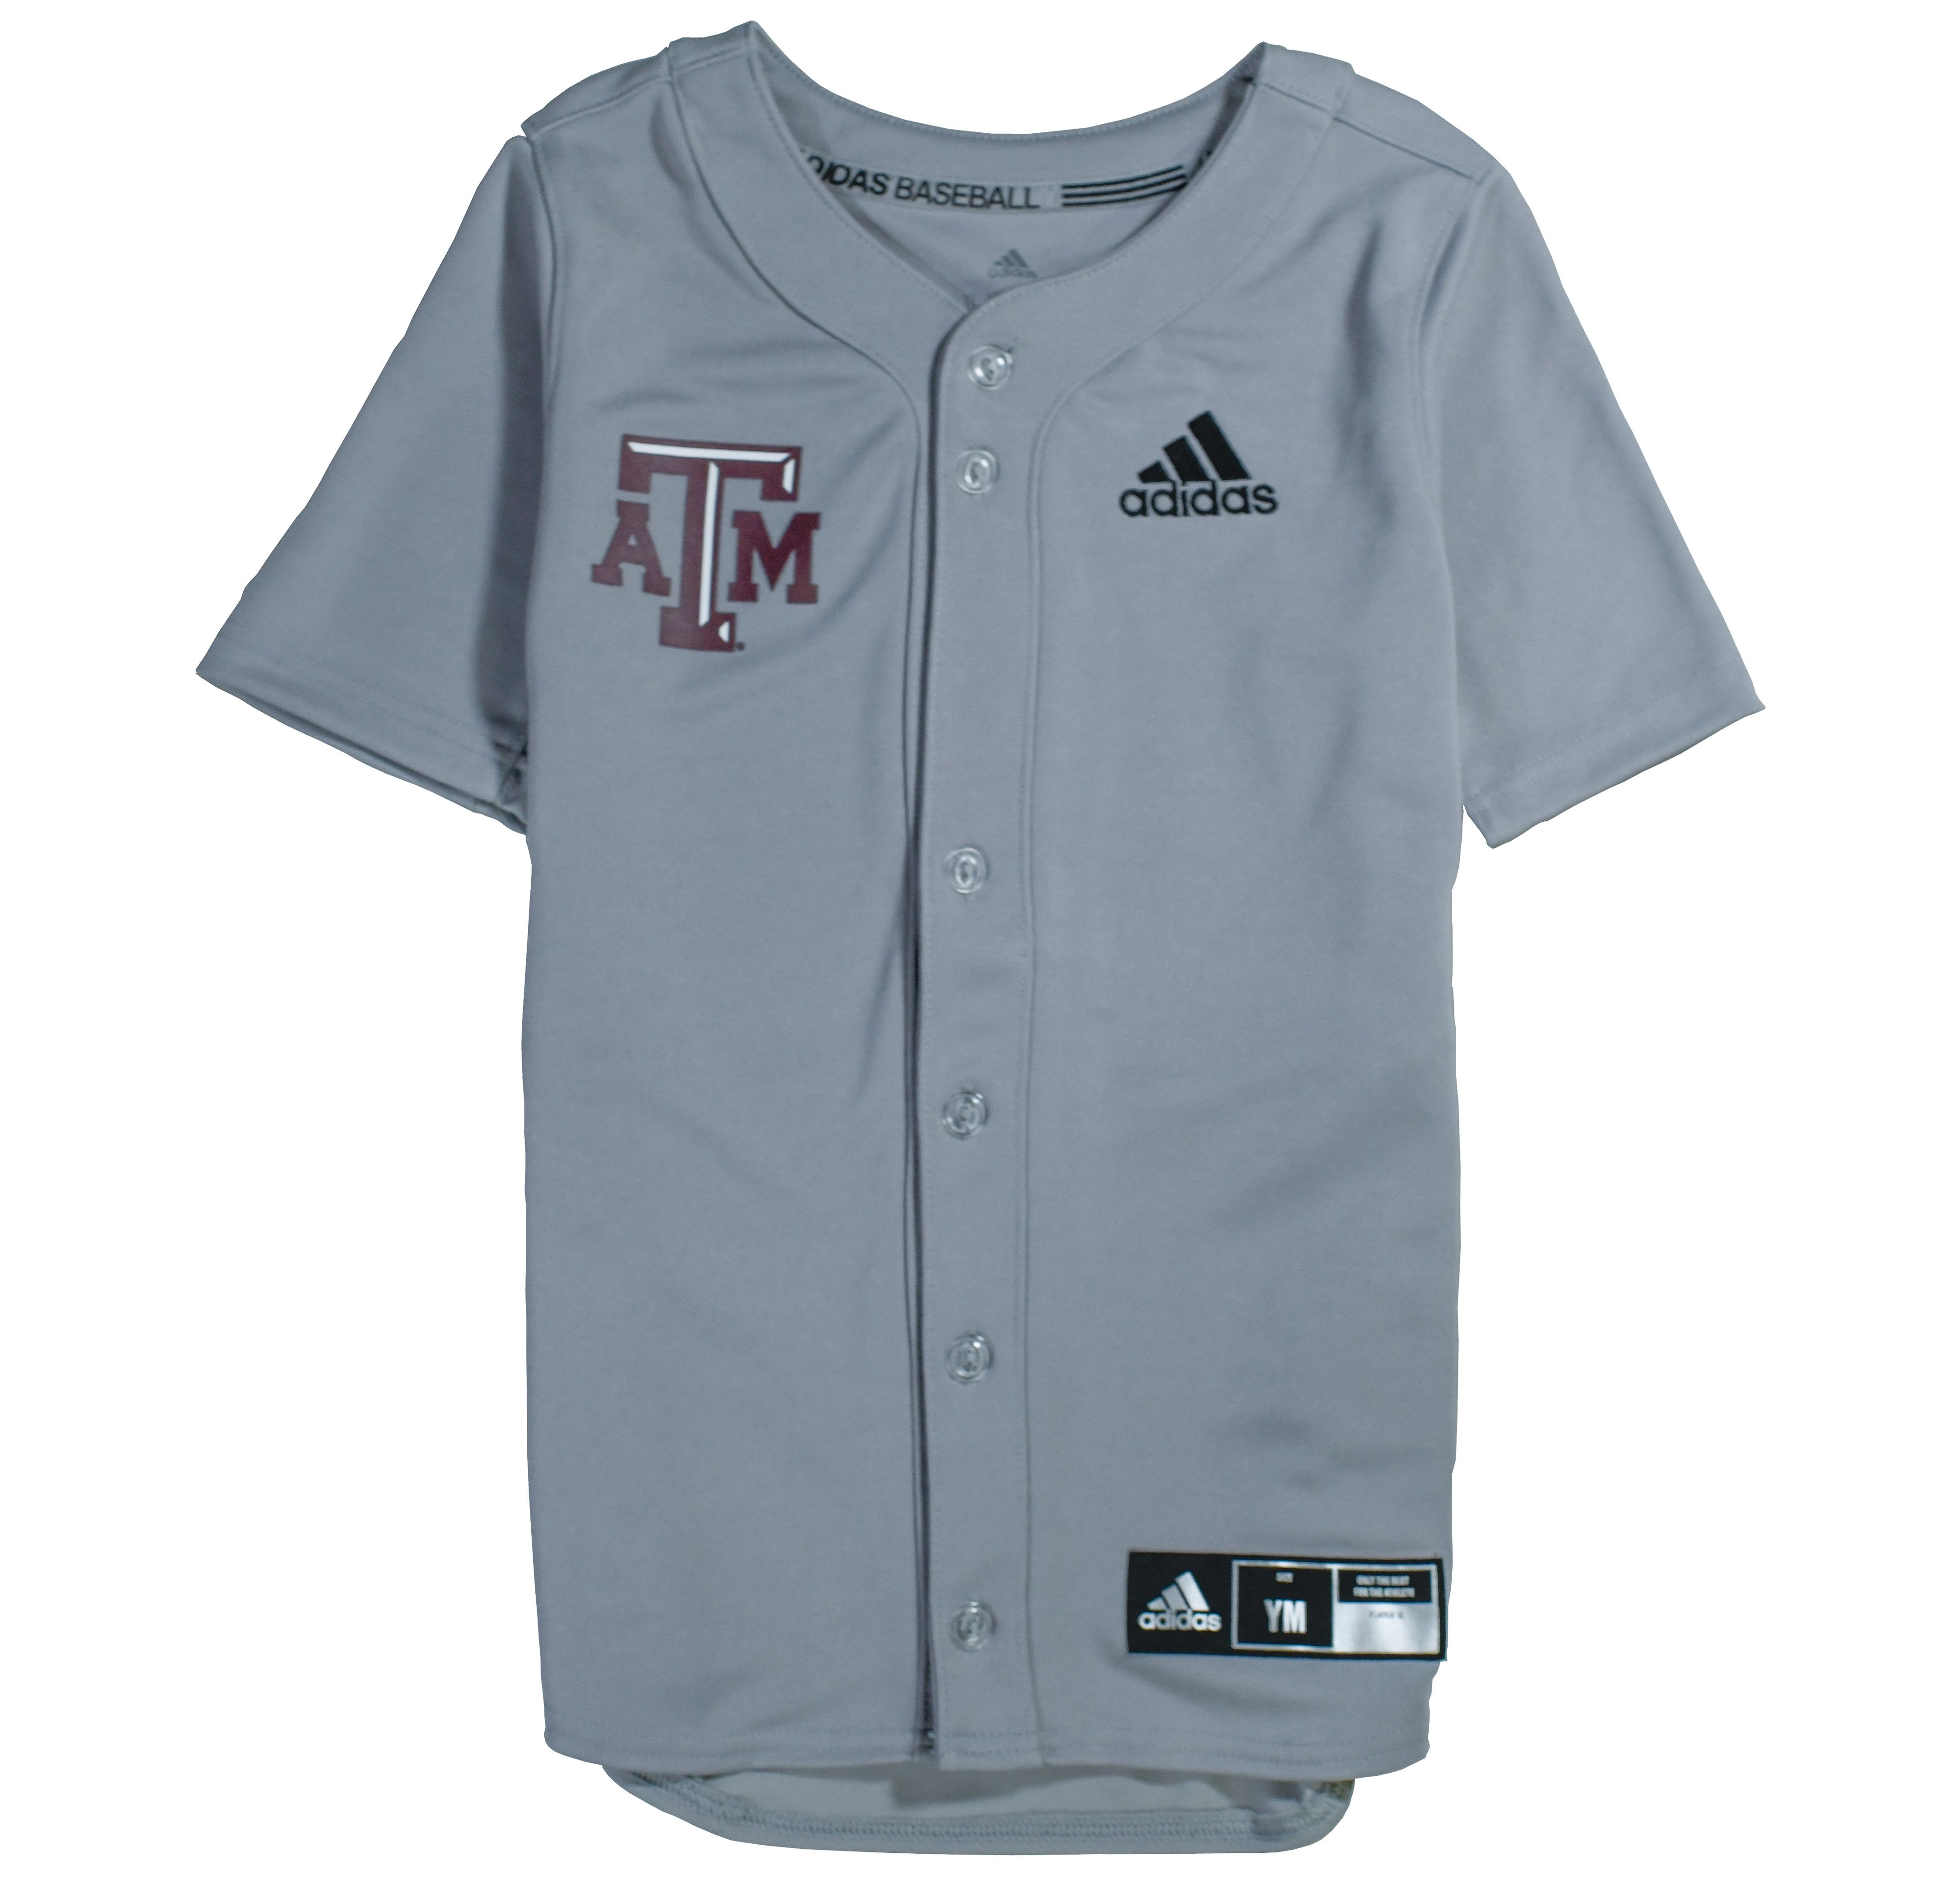 huge selection of d00cd d2fc8 Texas A&M Adidas Diamond King Elite Full Button Youth ...